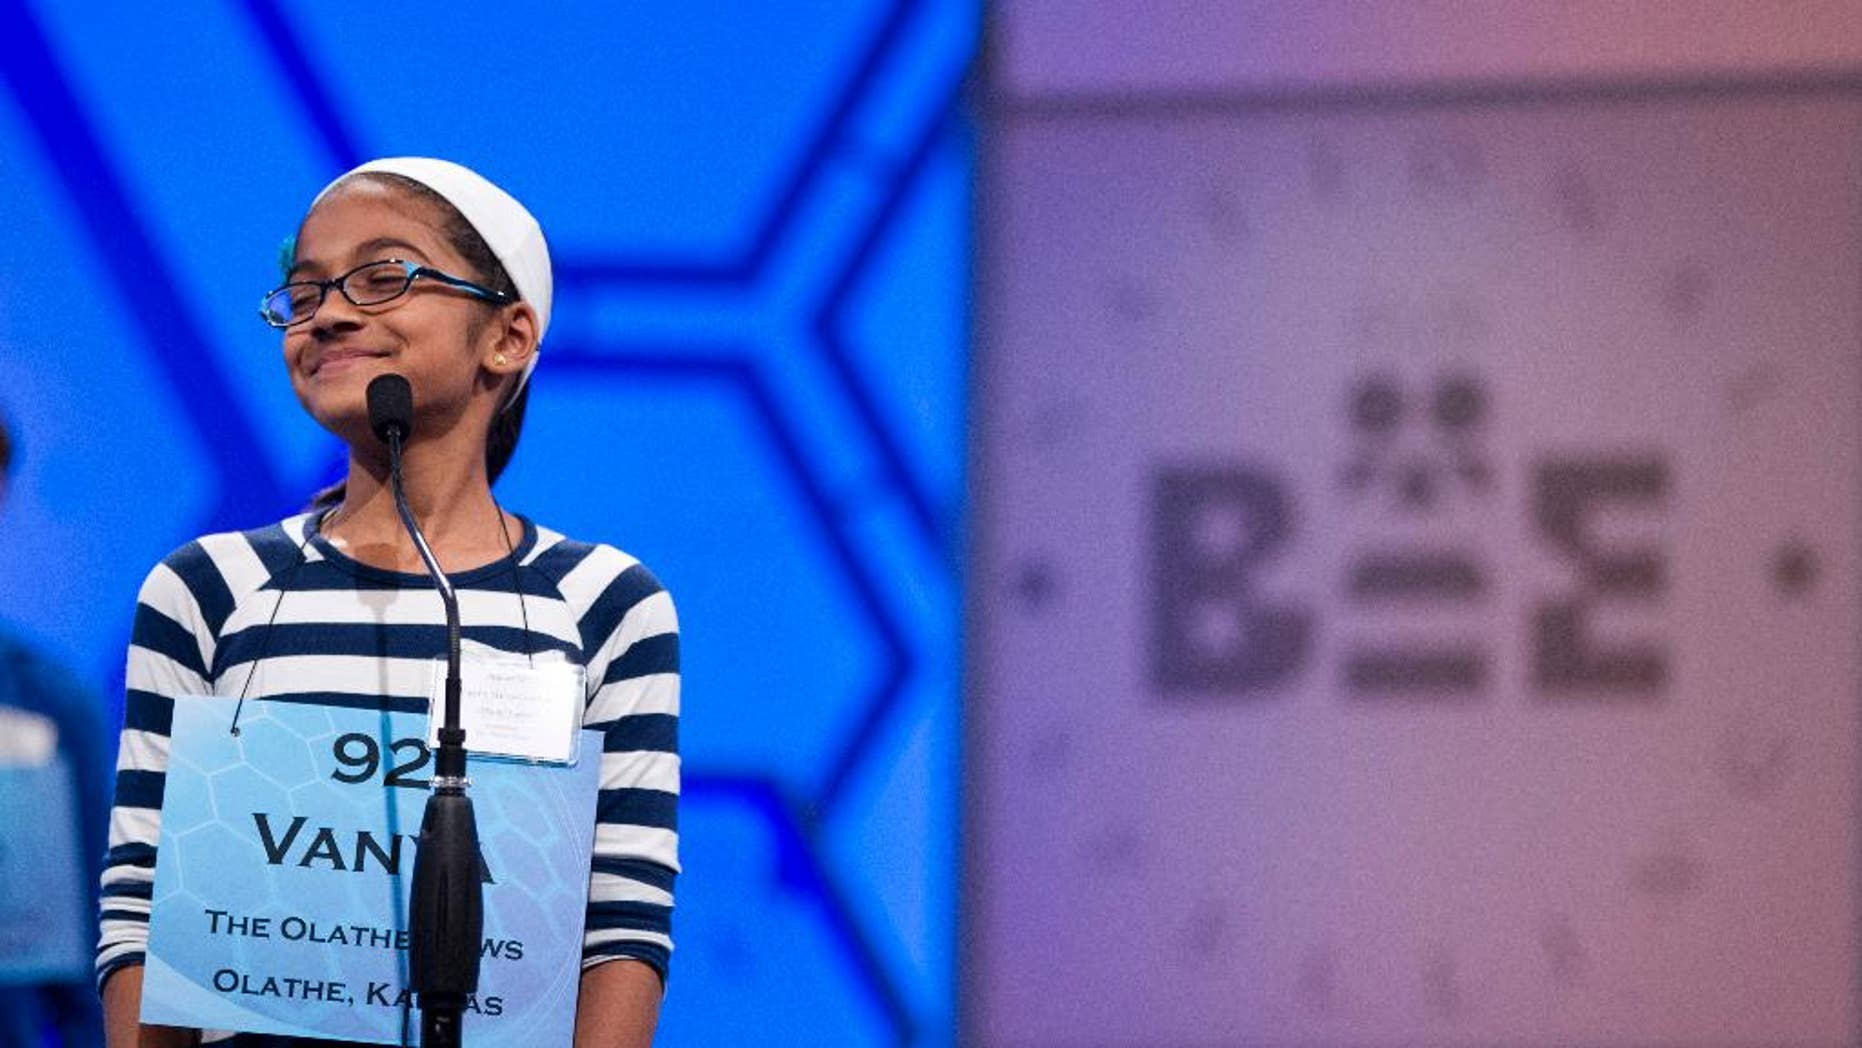 """File-This May 30, 2012, file photo shows Vanya Shivashankar, of Olathe, Kan., smiling as she answers her question during the third round of the National Spelling Bee in Oxon Hill, Md.  Participants and bee officials say the competition is fairer now that kids are tested on what words mean. But it's also taken some of the drama away from the semifinal rounds. Thirteen-year-old Vanya Shivashankar says she misses the simplicity of the old format, which she called """"spelling till you drop."""" Now, there are two semifinal rounds, and test scores determine who makes it to the finals. Vanya was eliminated at that stage last year.  (AP Photo/Evan Vucci, File)"""